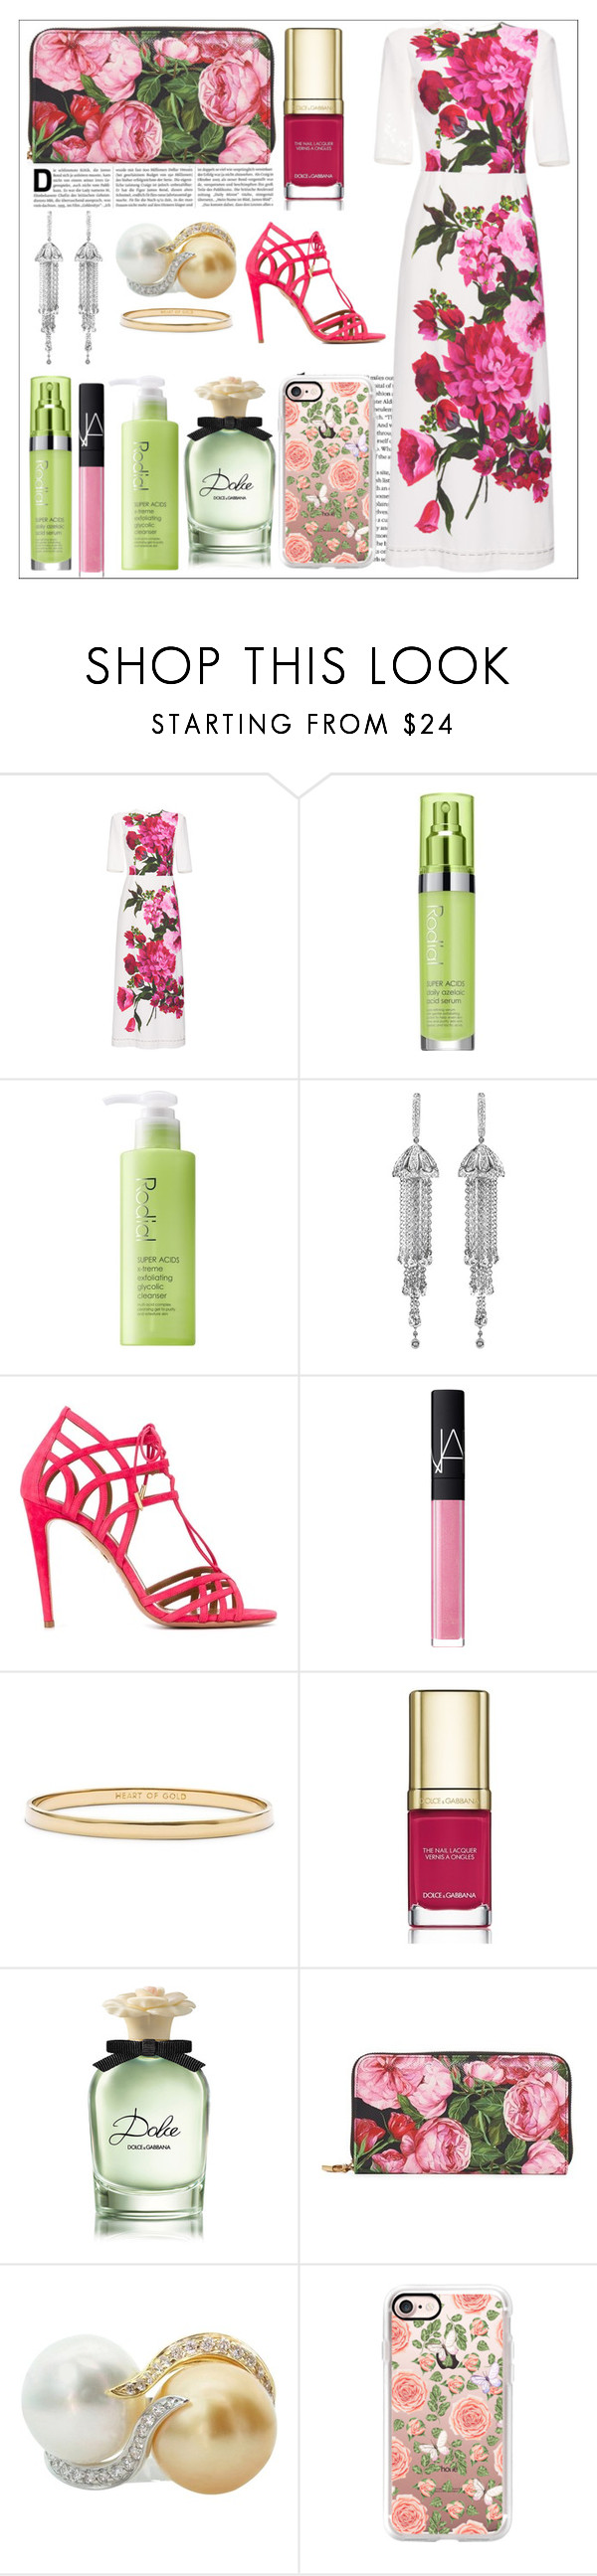 """Dolce & Gabbana"" by mkelly1 ❤ liked on Polyvore featuring Dolce&Gabbana, Rodial, Shay, Aquazzura, NARS Cosmetics, Kate Spade and Casetify"